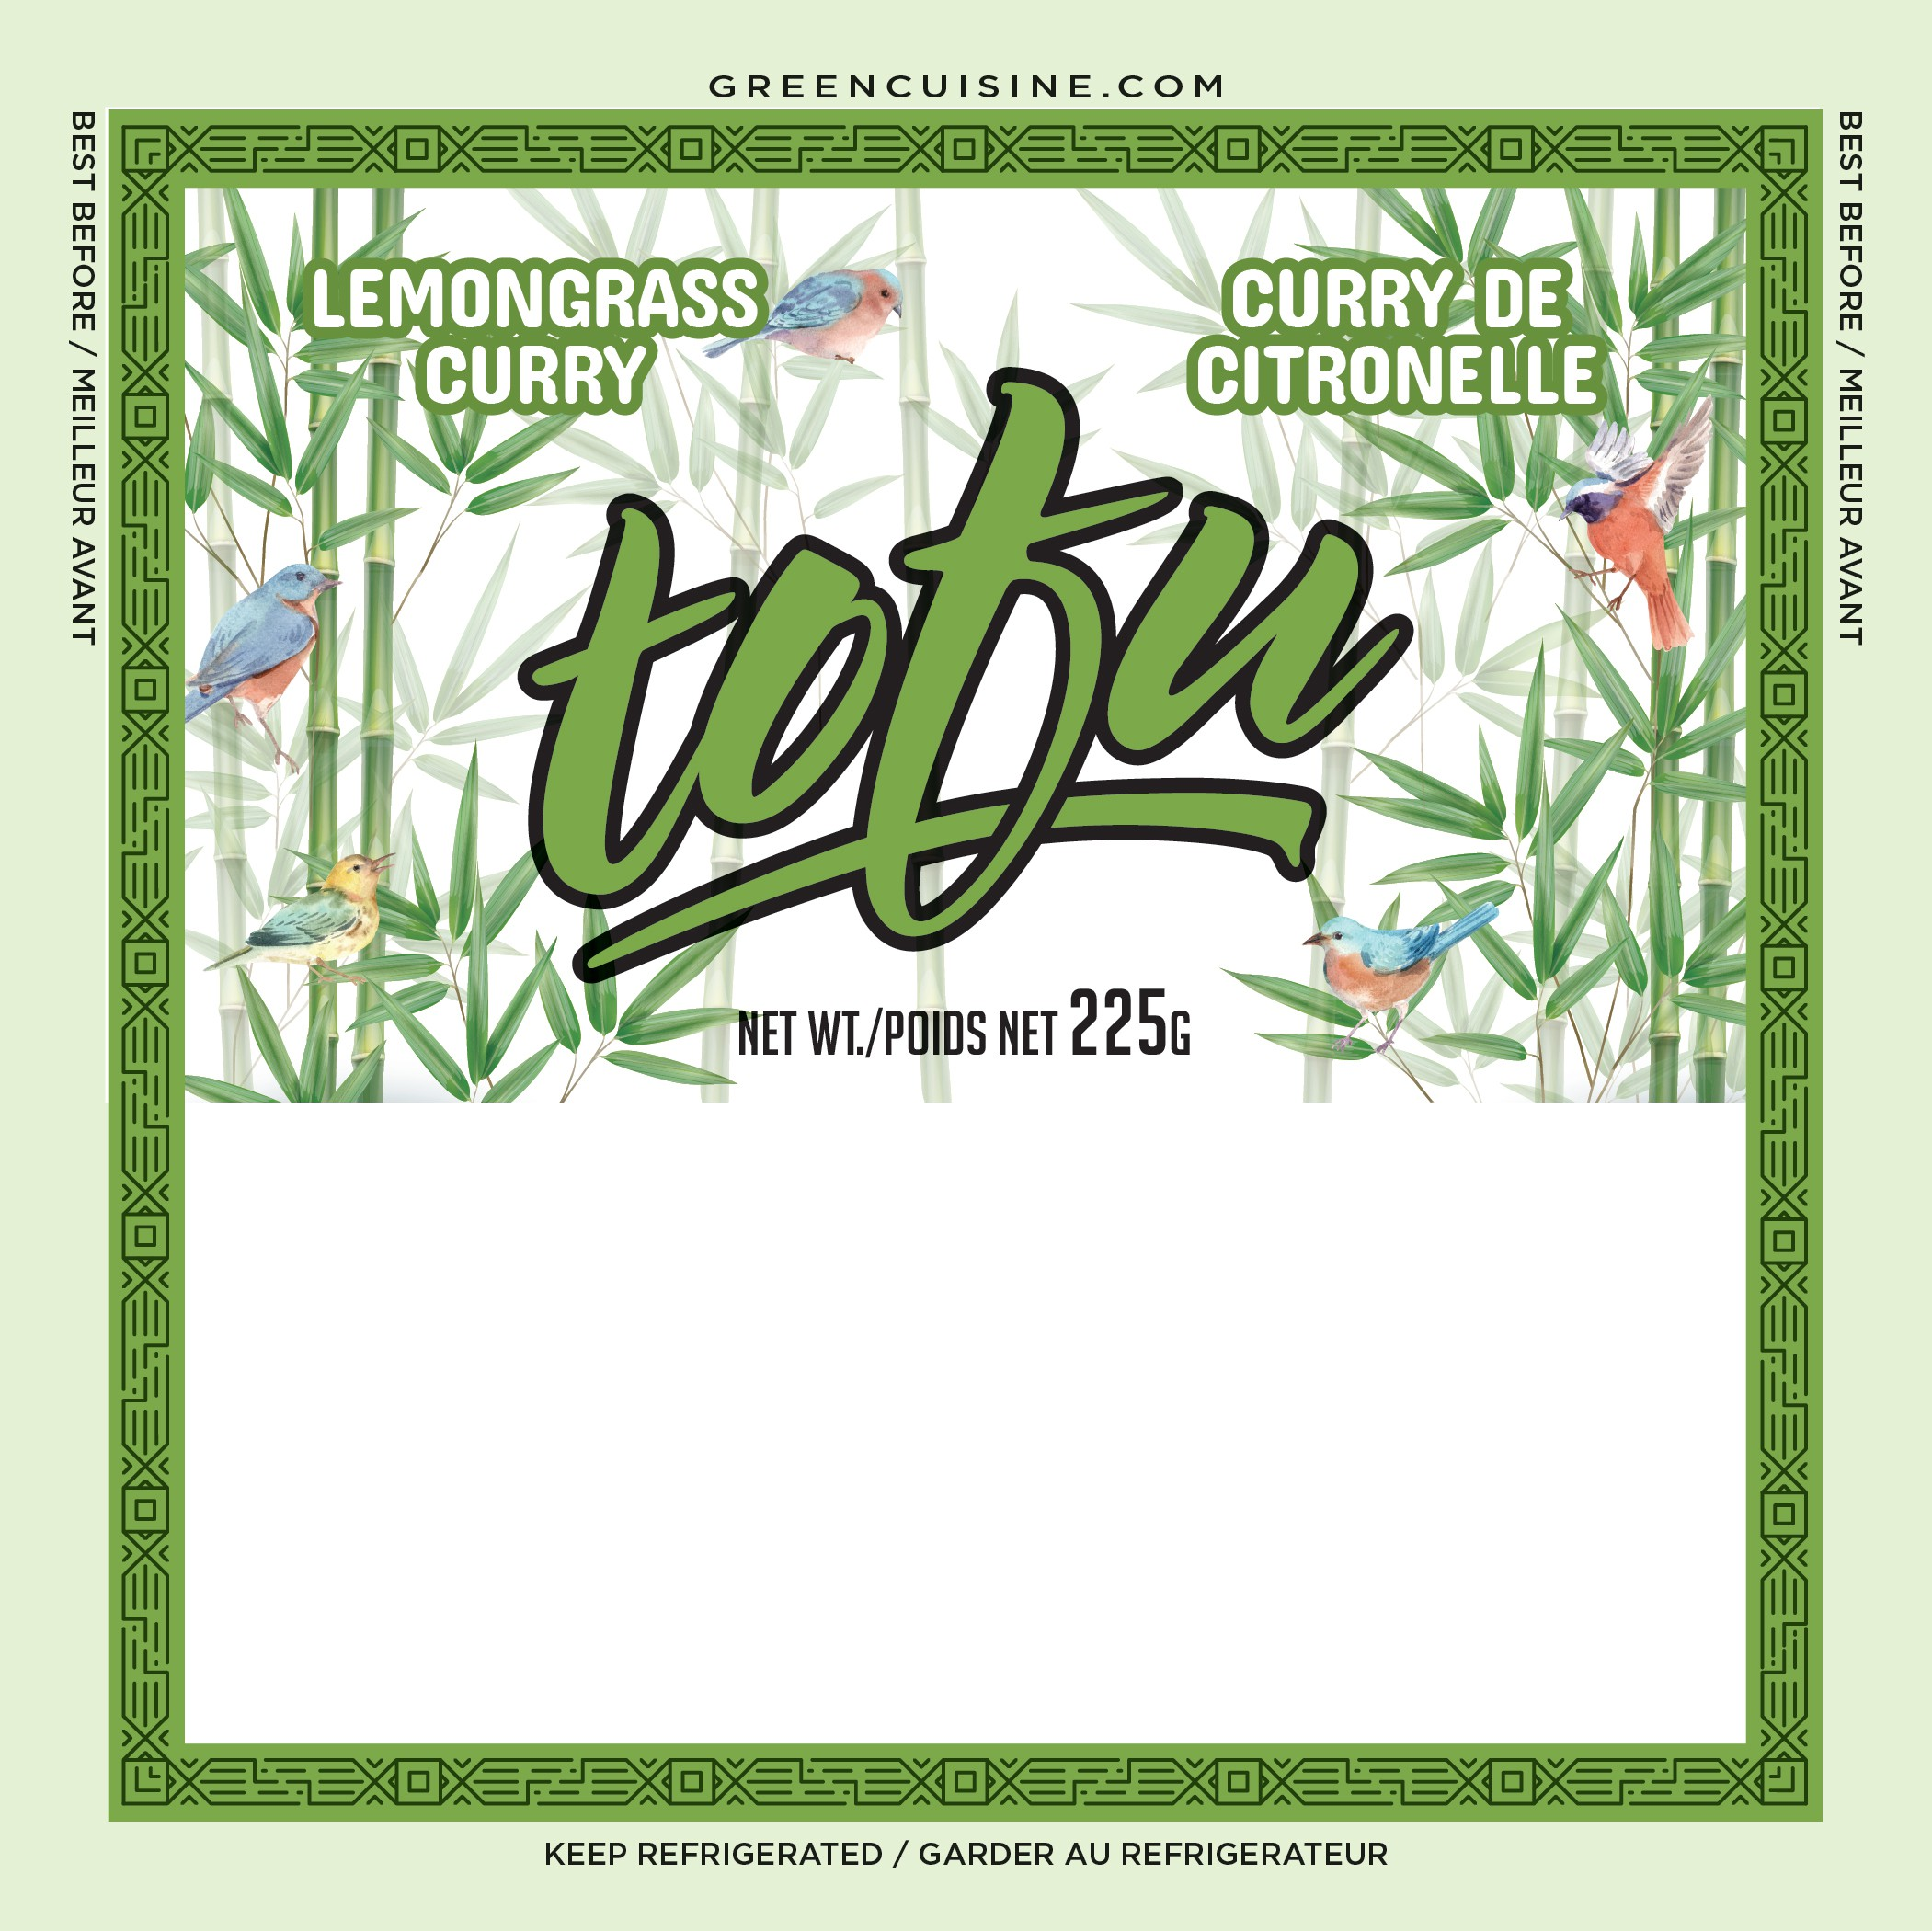 TOFU - Labels for 3 products